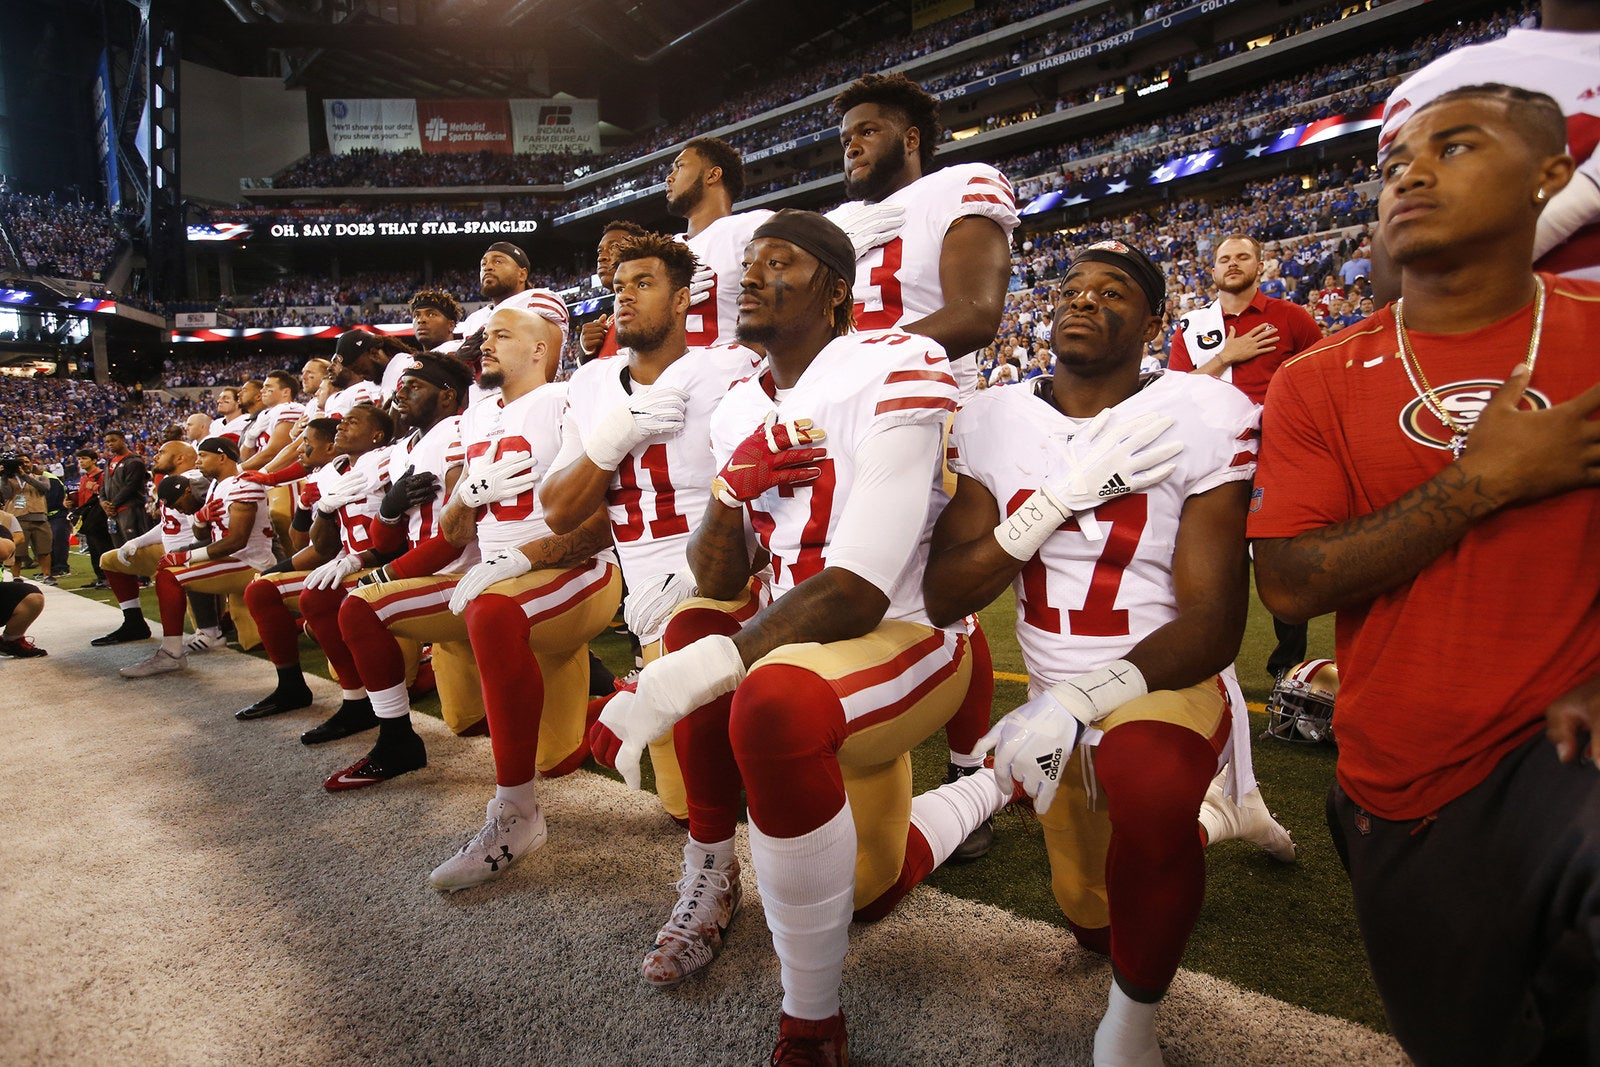 The San Francisco 49ers kneel and stand together during the anthem prior to the game against the Indianapolis Colts at Lucas Oil Stadium on Oct. 8, in Indianapolis.